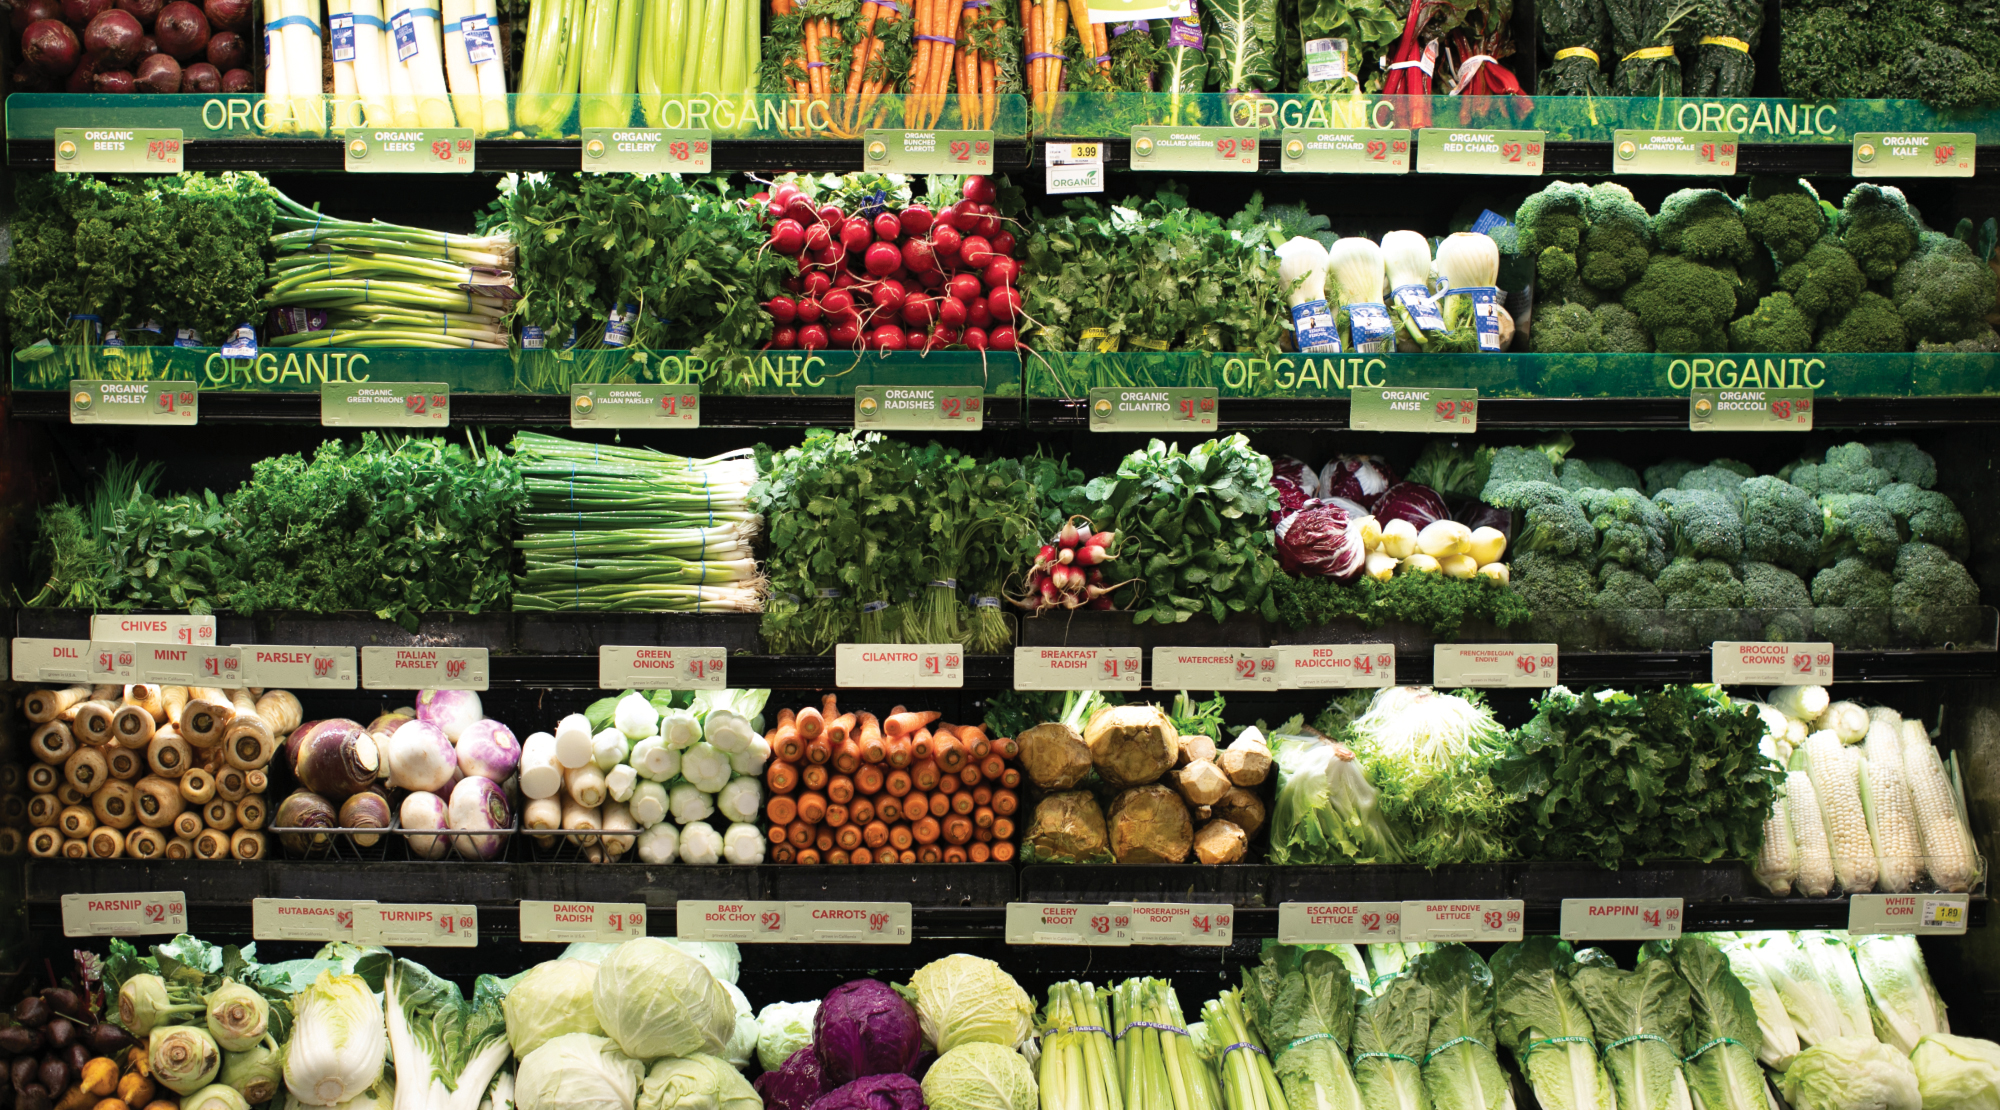 Colorful Organic produce is  a highlight of the fresh department at Gelson's Market